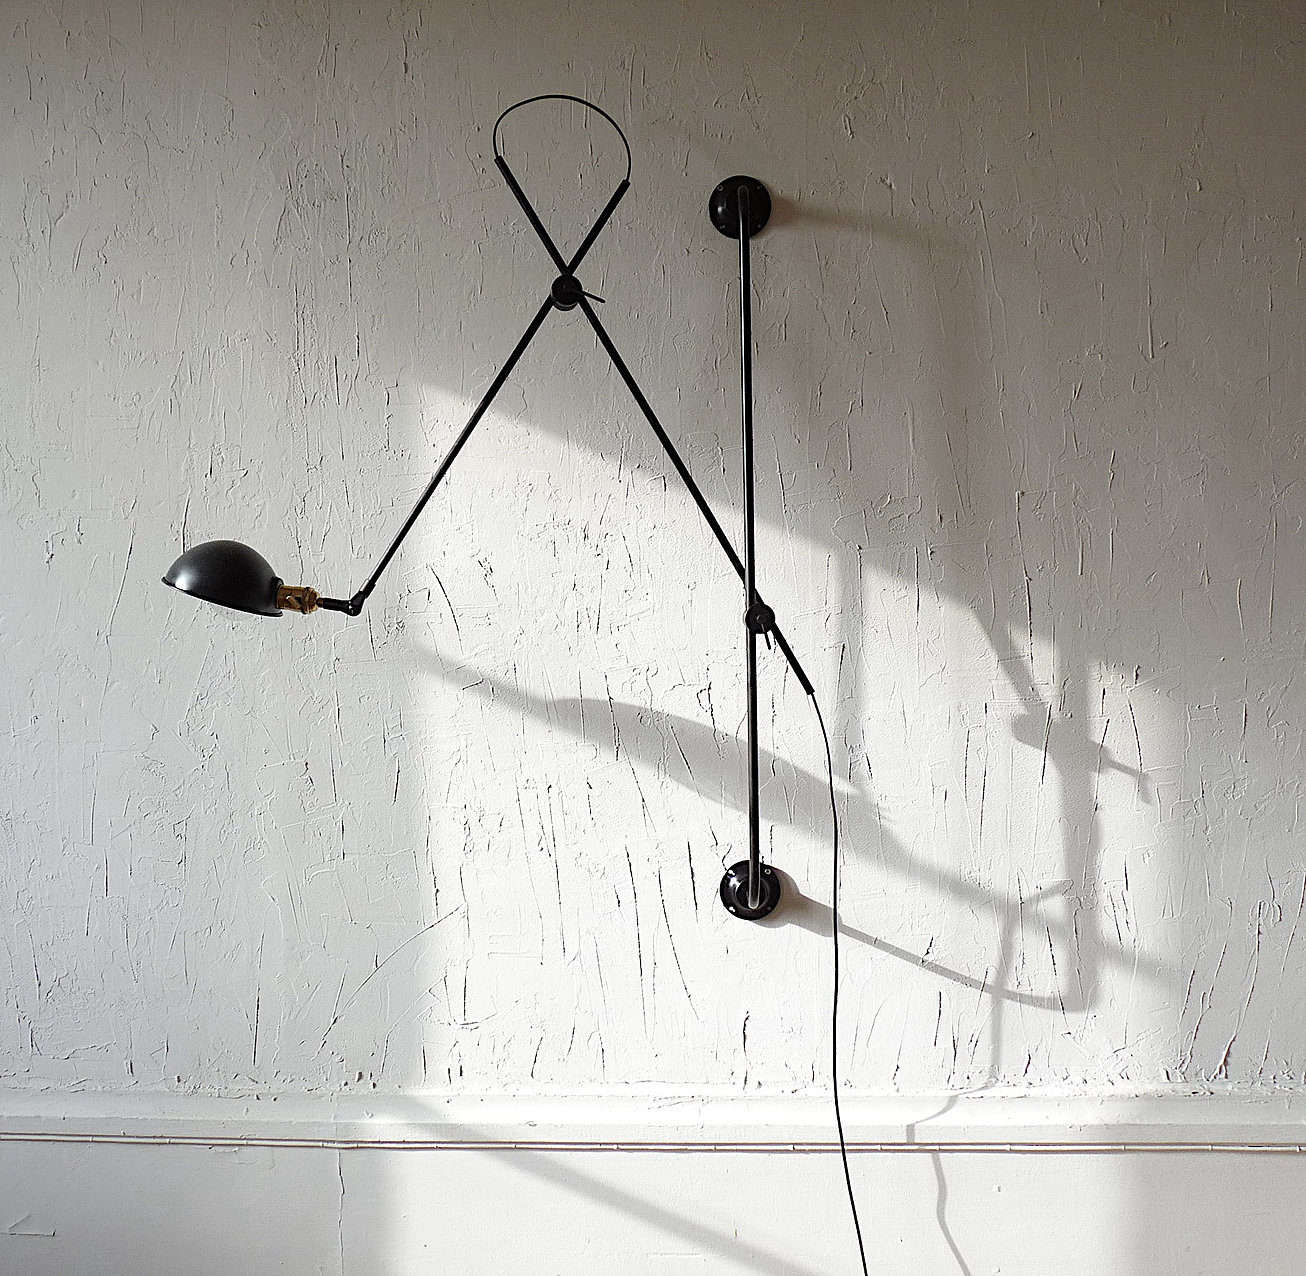 Made in Villeurbanne, France, the Adjustable Two-Arm Wall Lamp by lighting atelier Wo & Wé is made of black steel, and is comprised of a black rod affixed to the wall with articulating arms attached. It's available on request for €659, and can be wired for installation or plug-in.